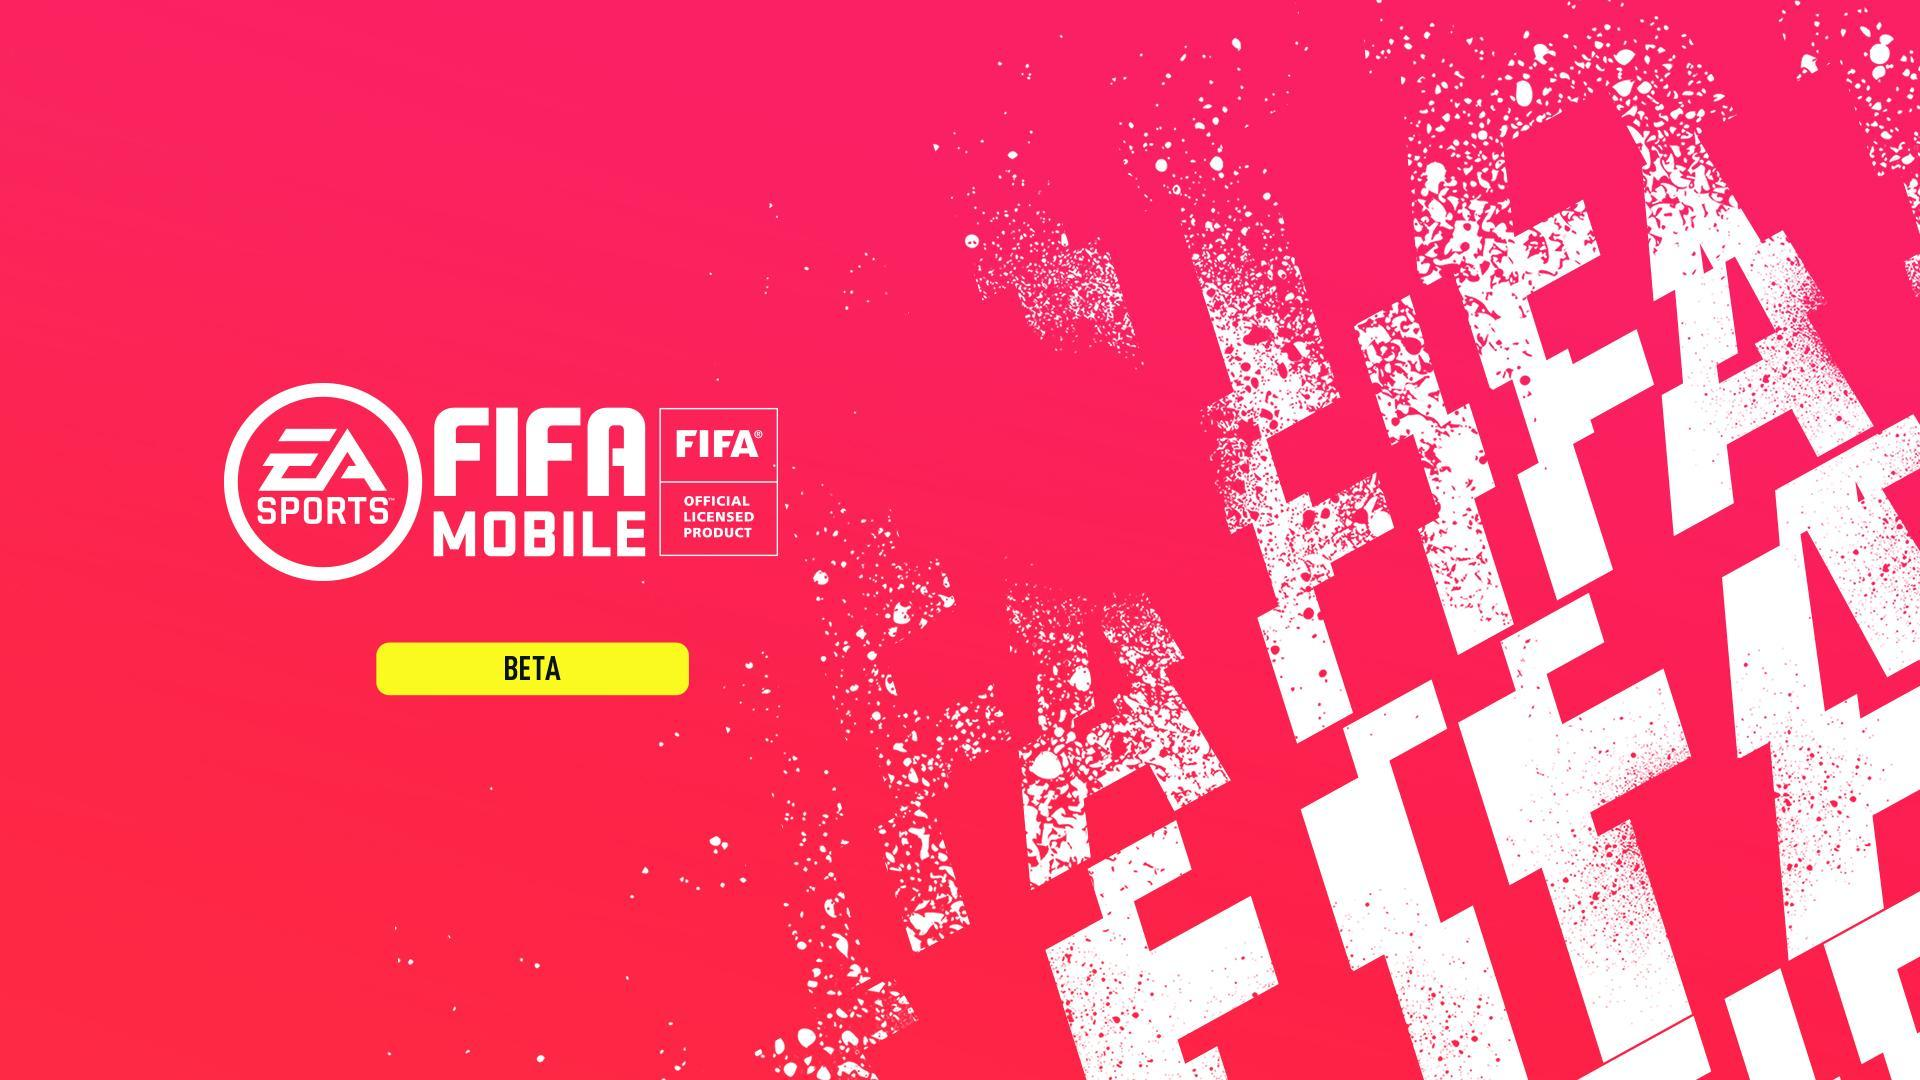 FIFA Soccer: Beta for Android - APK Download